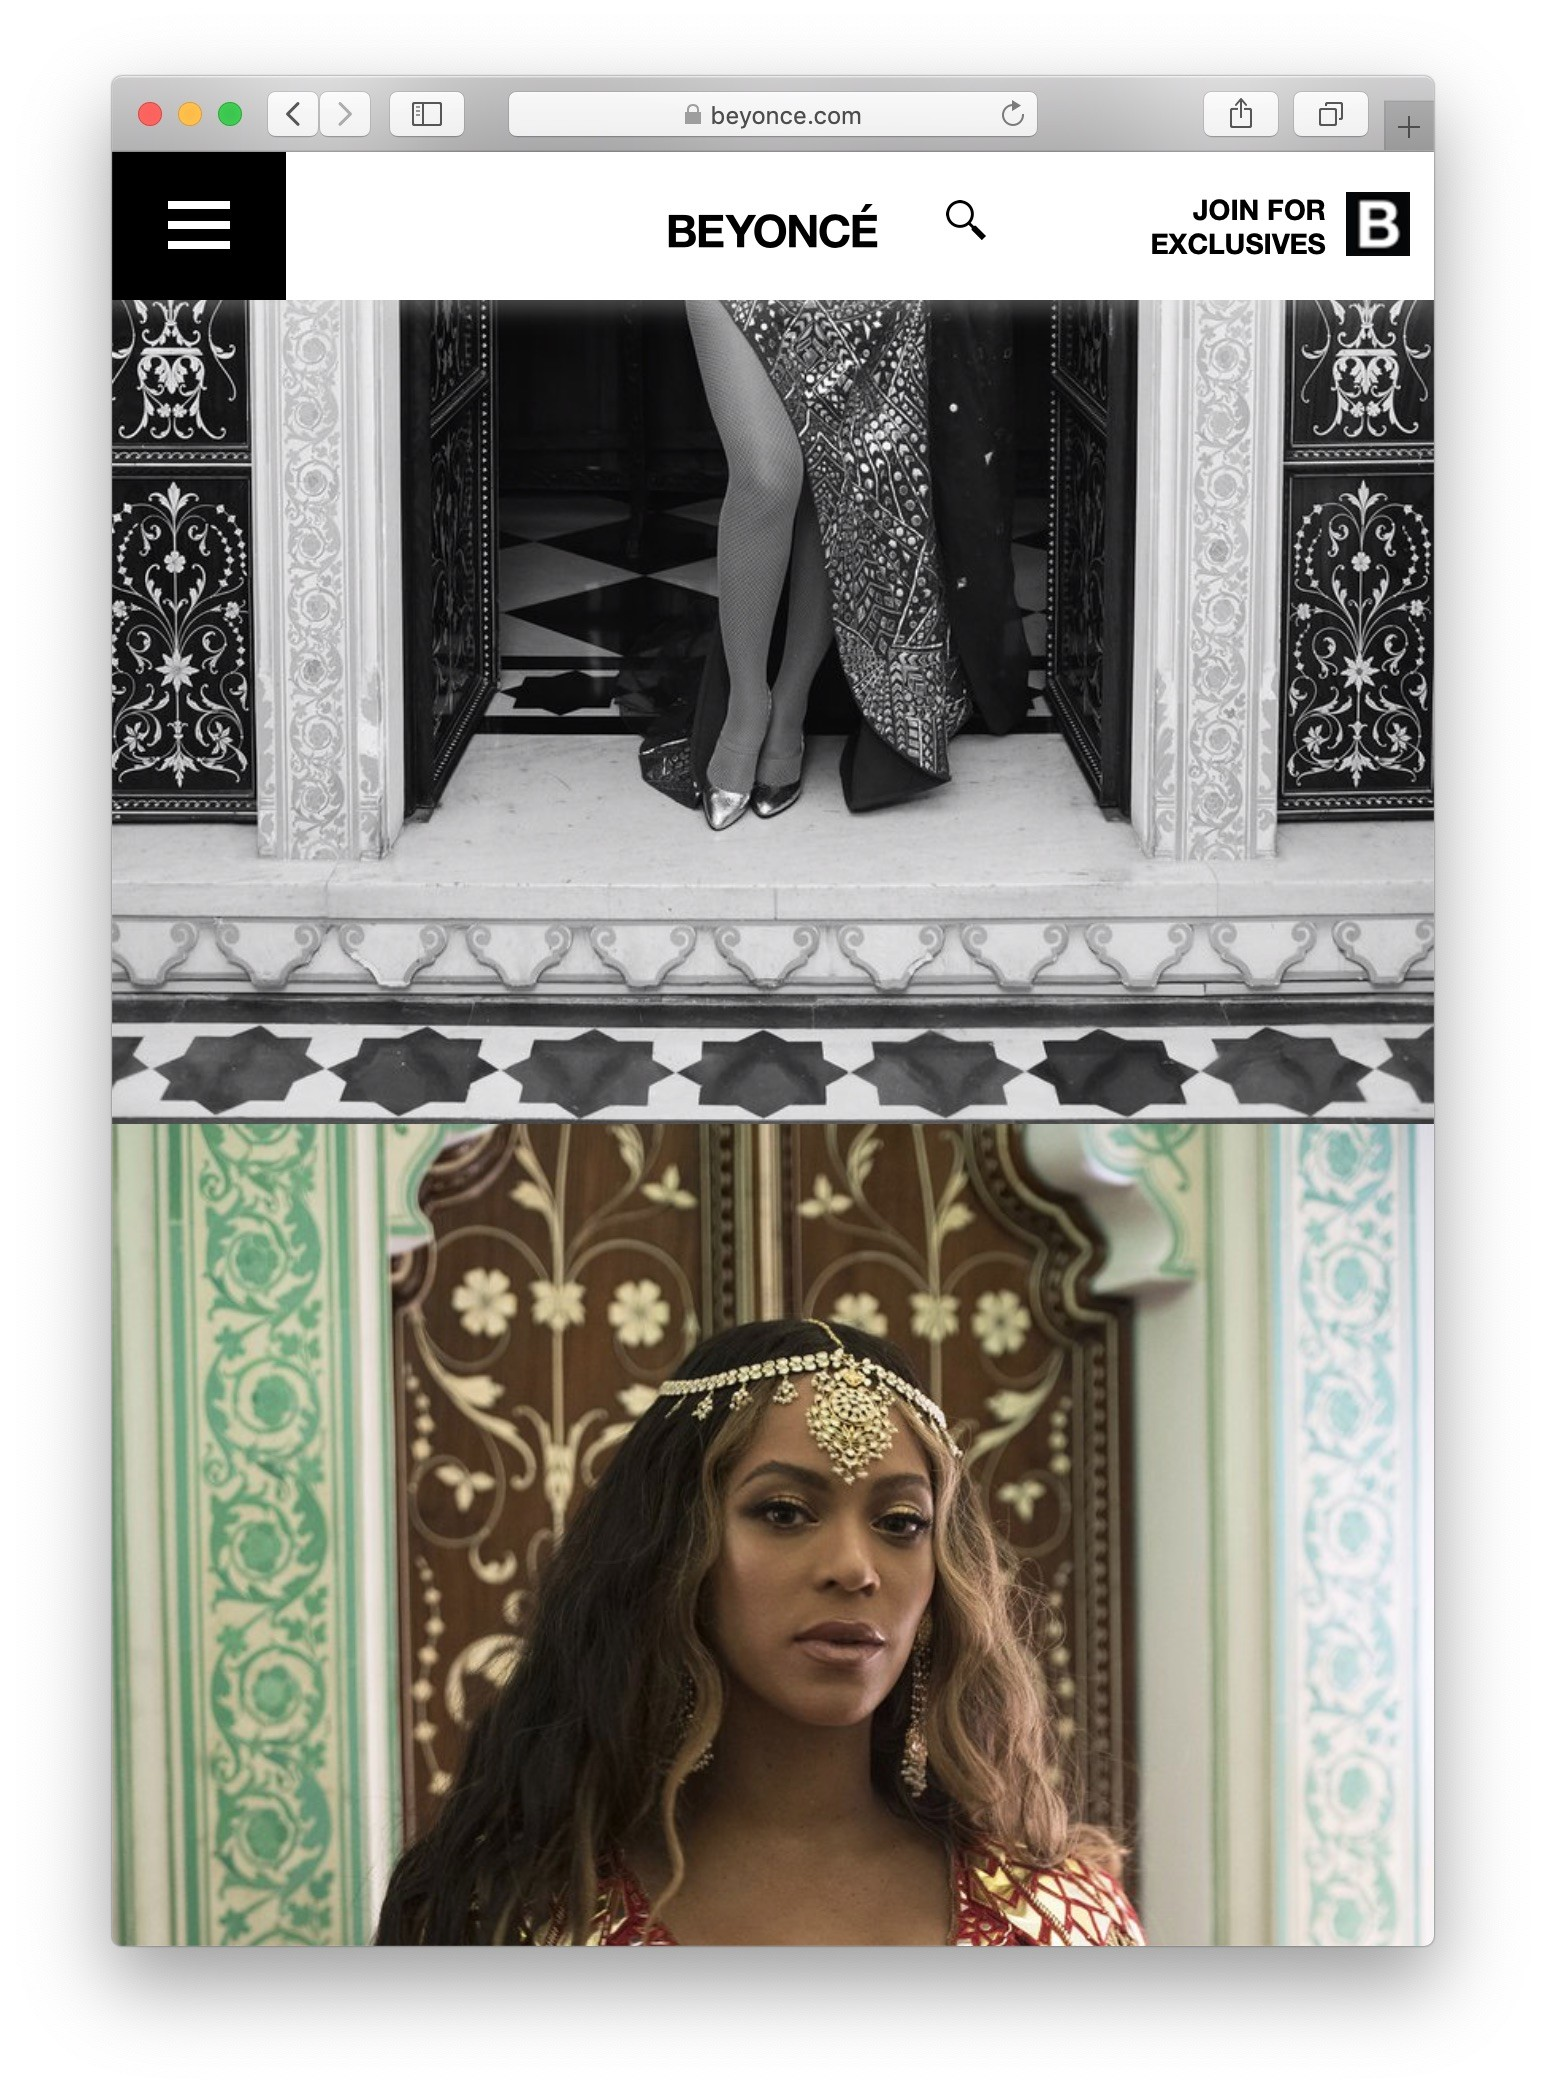 What is WordPress? Even Beyonce uses it